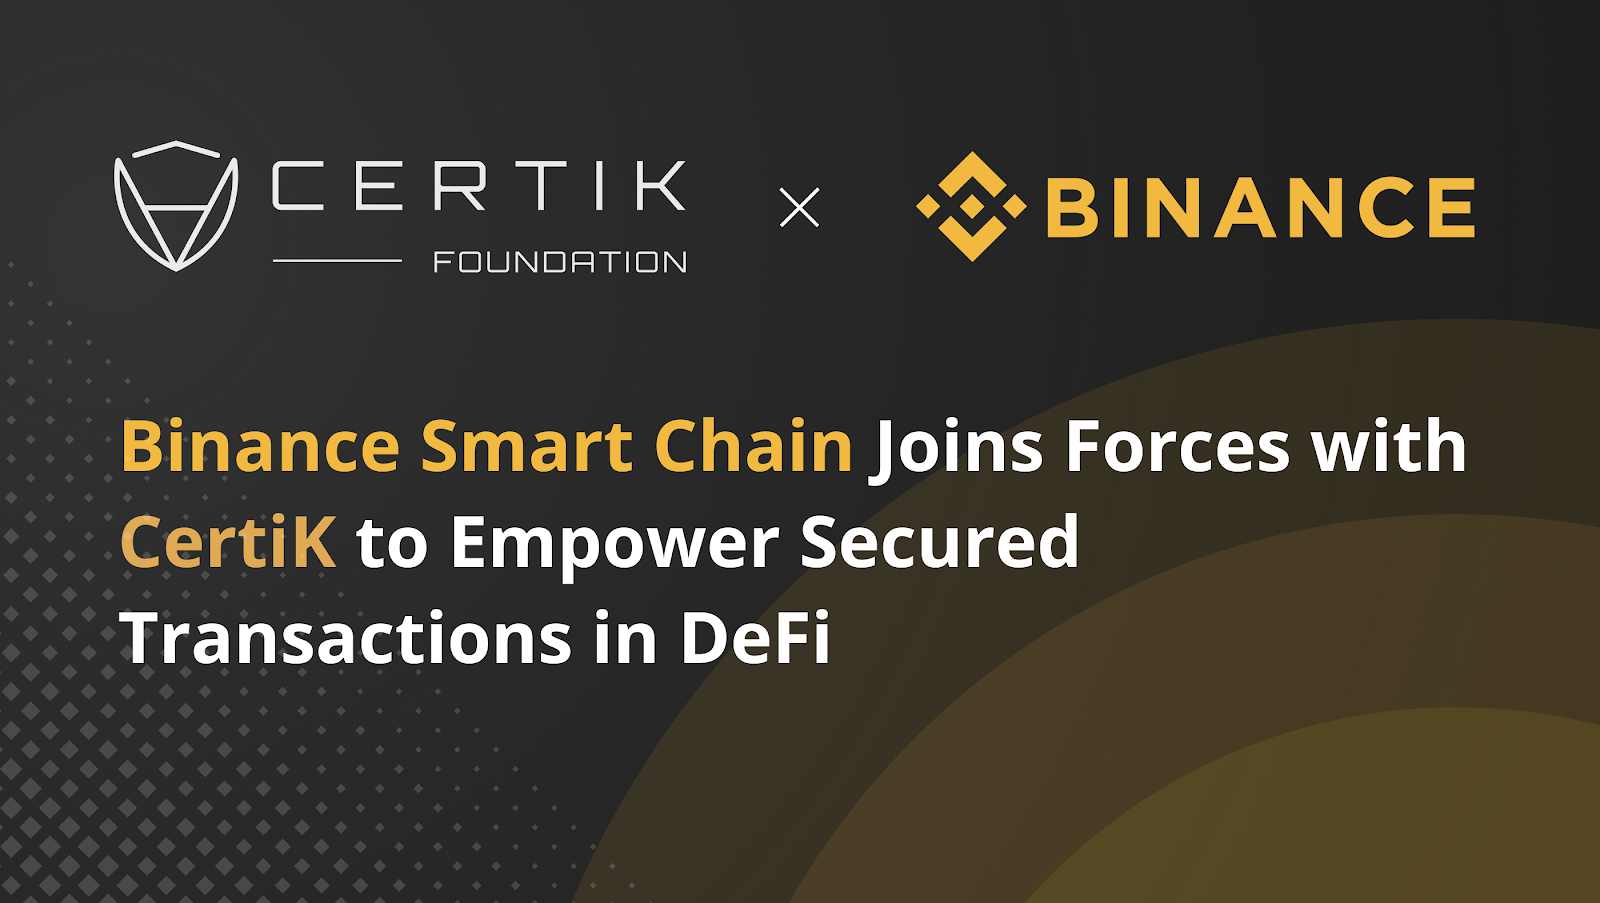 CertiK Partners with Binance Smart Chain for the Future of DeFi Security